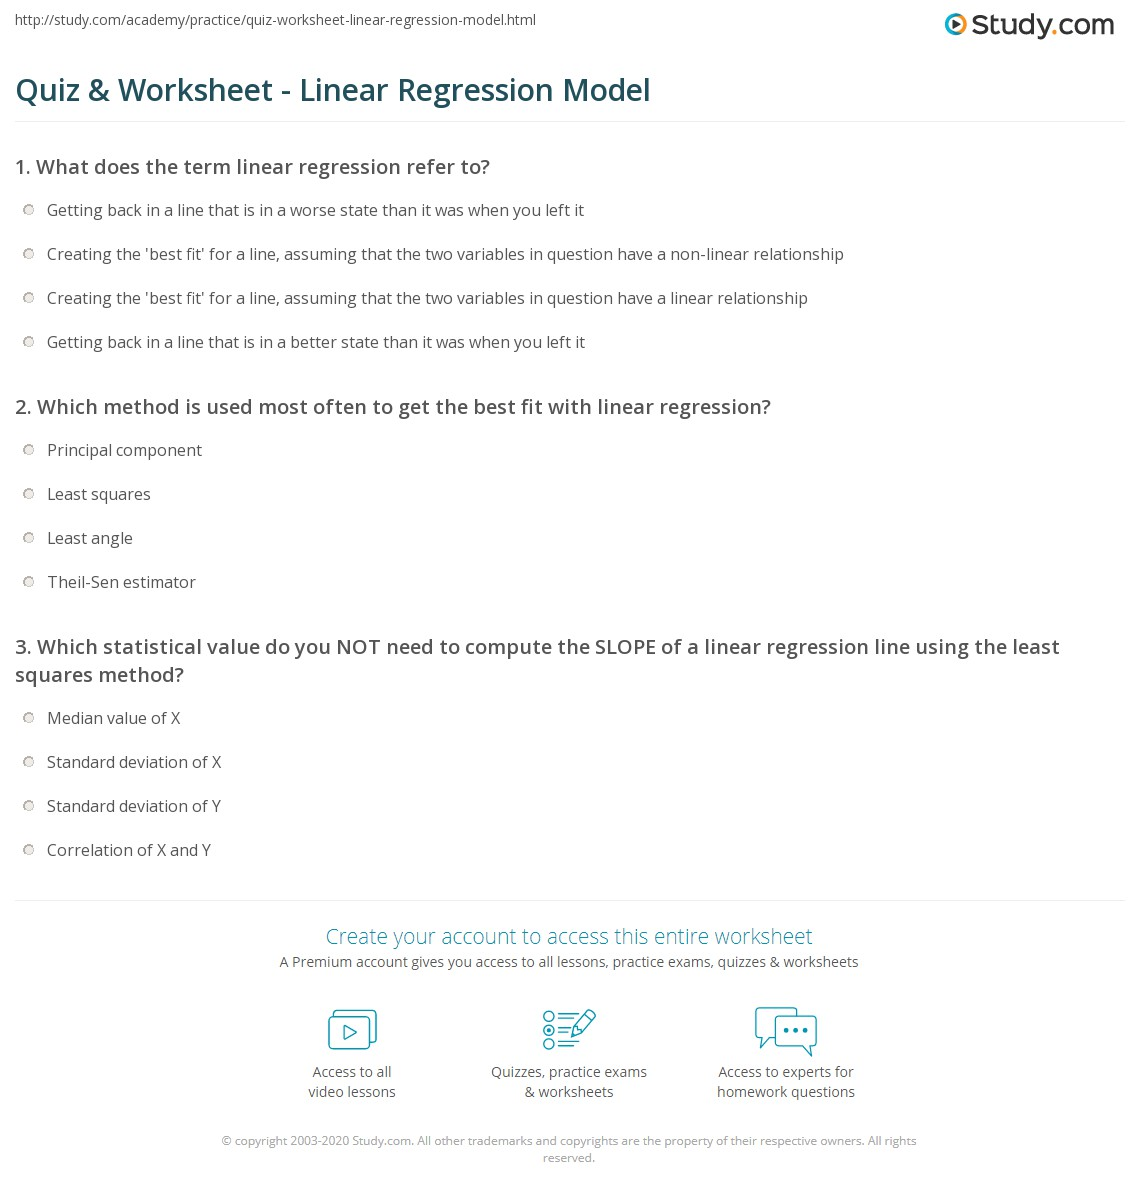 Quiz & Worksheet - Linear Regression Model | Study.com